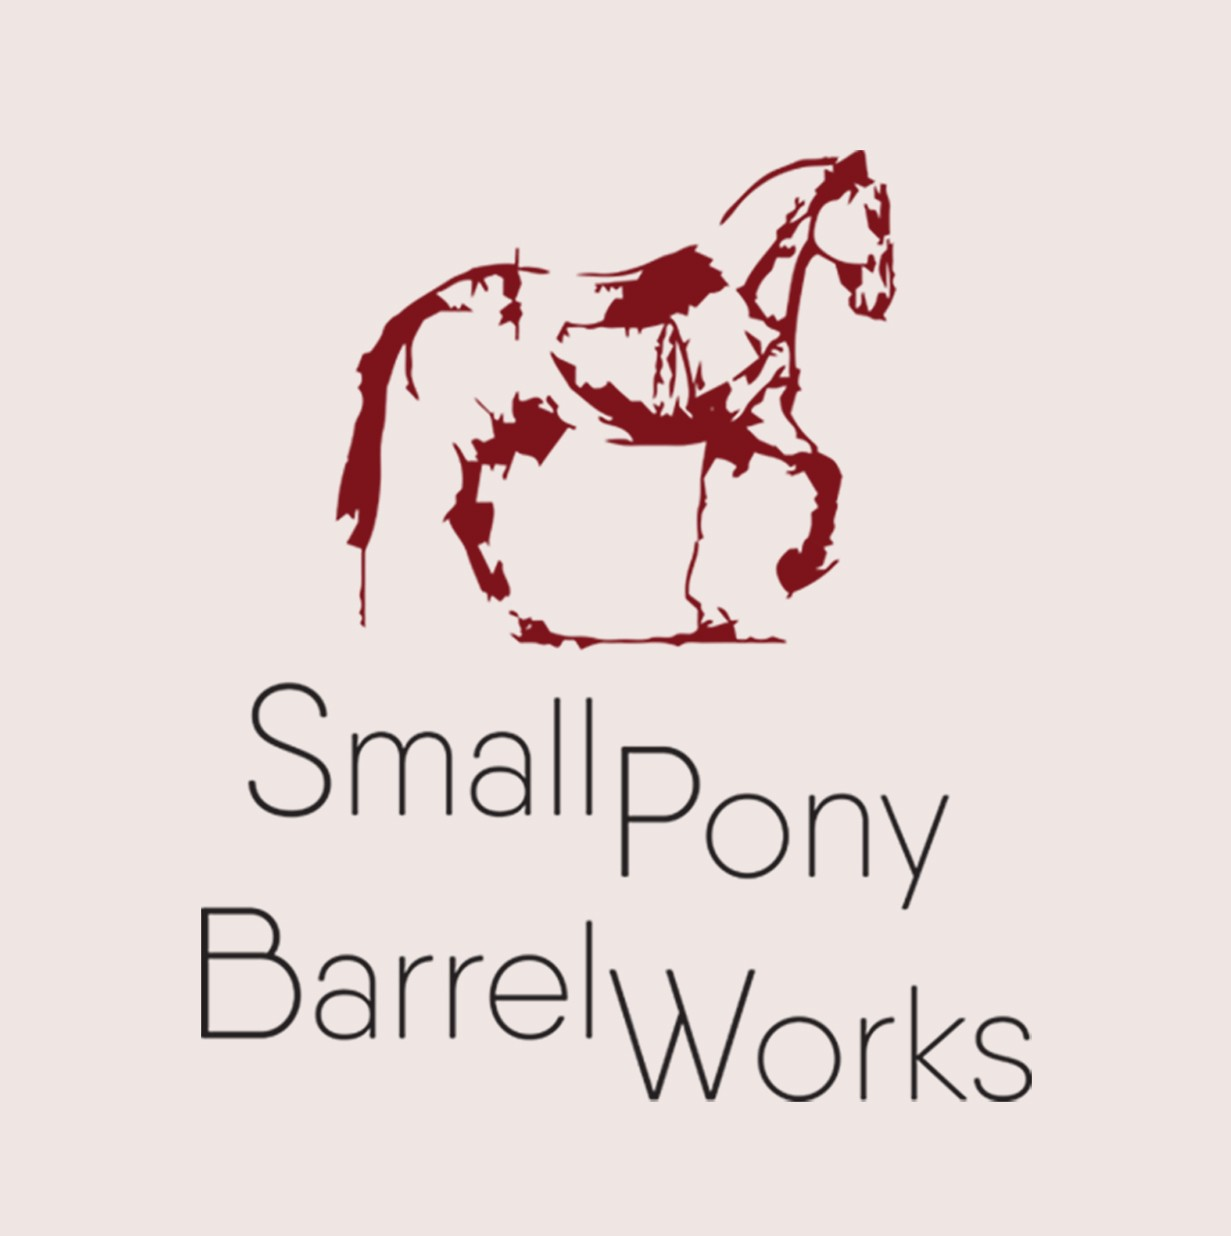 Small Pony Barrel Works